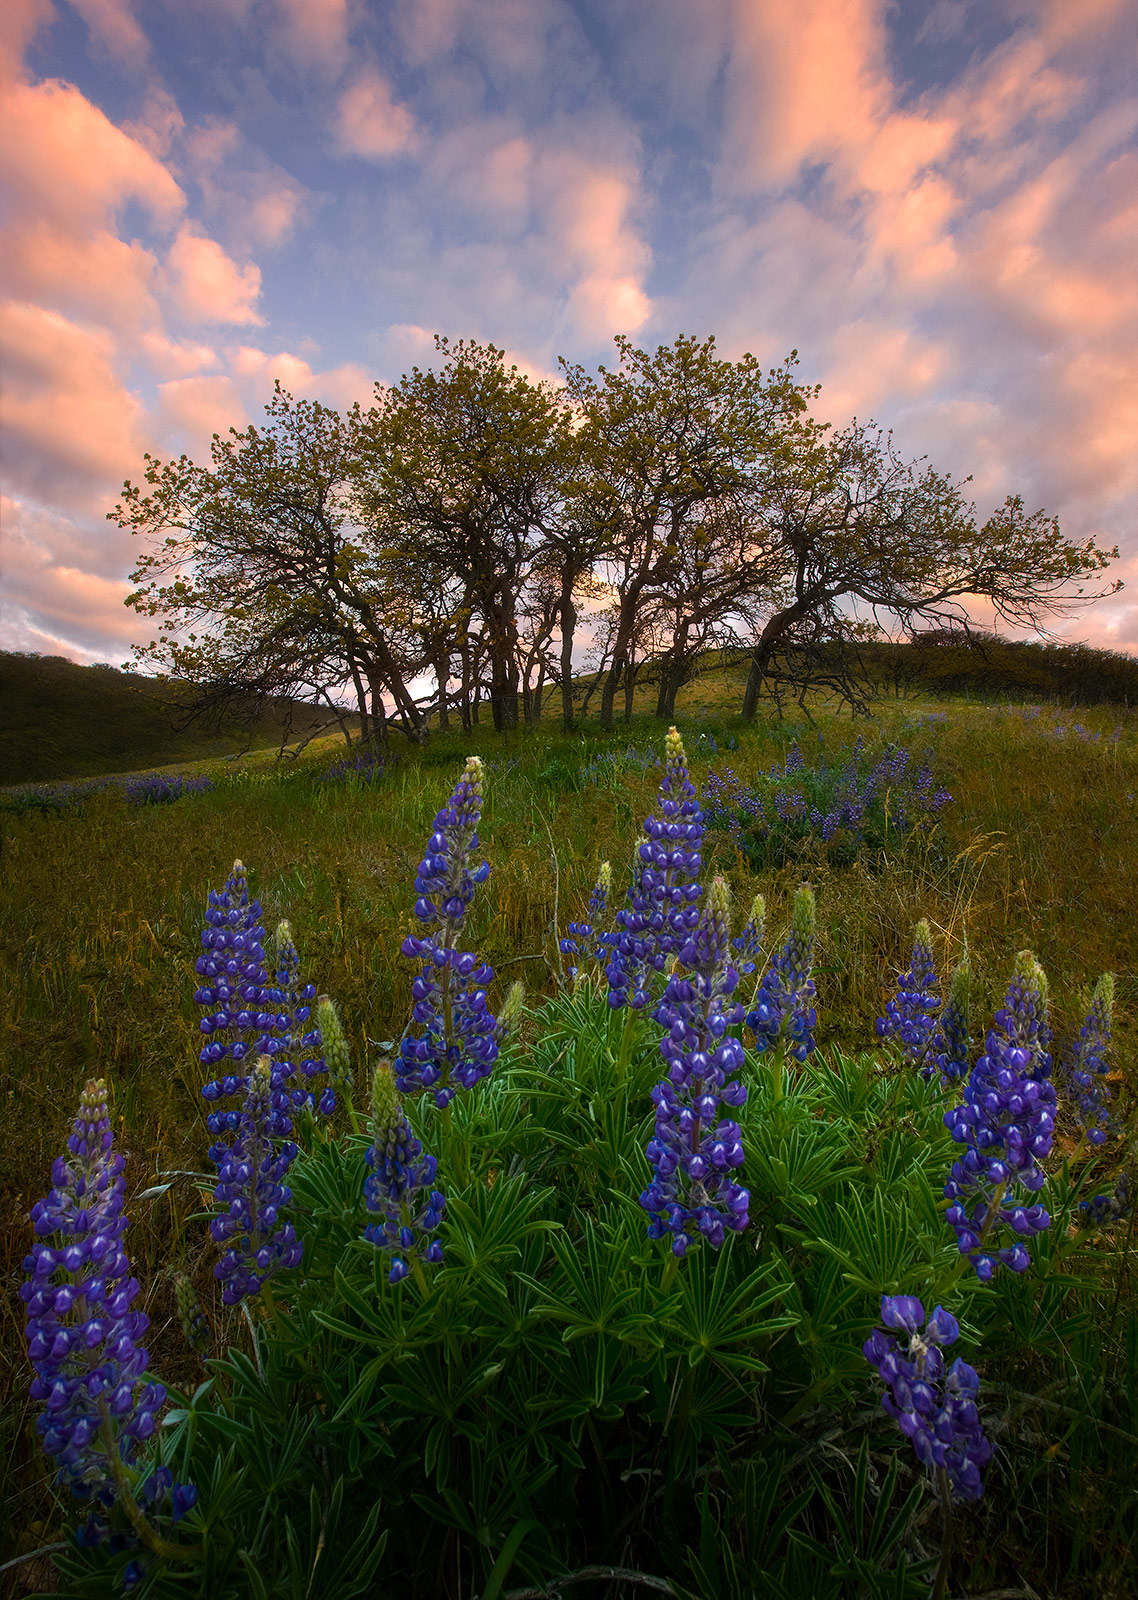 Lupine wildflowers and oaks photographed at sunrise in Washington's Columbia Hills.